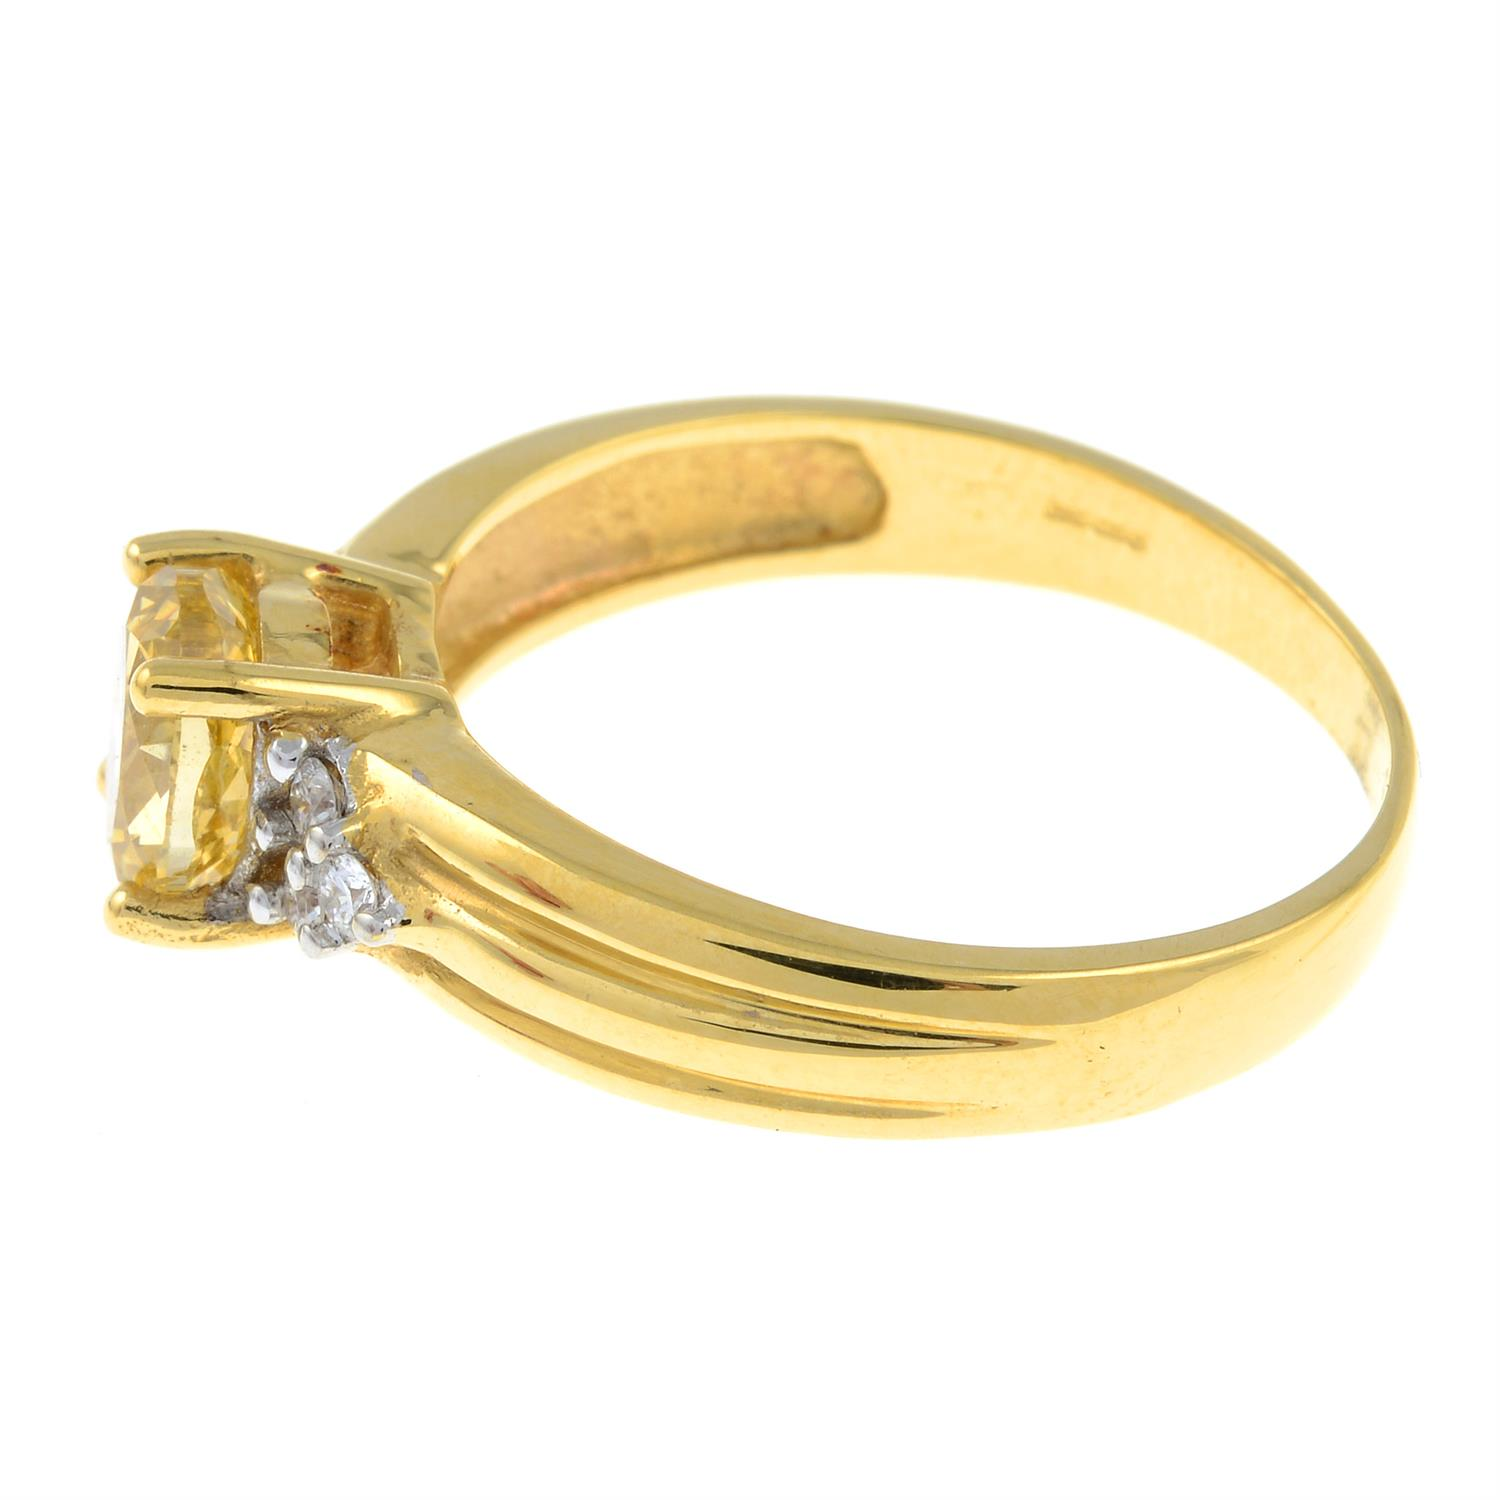 An 18ct gold oval-shape 'brownish-yellow' diamond ring, with brilliant-cut diamond trefoil sides. - Image 3 of 6